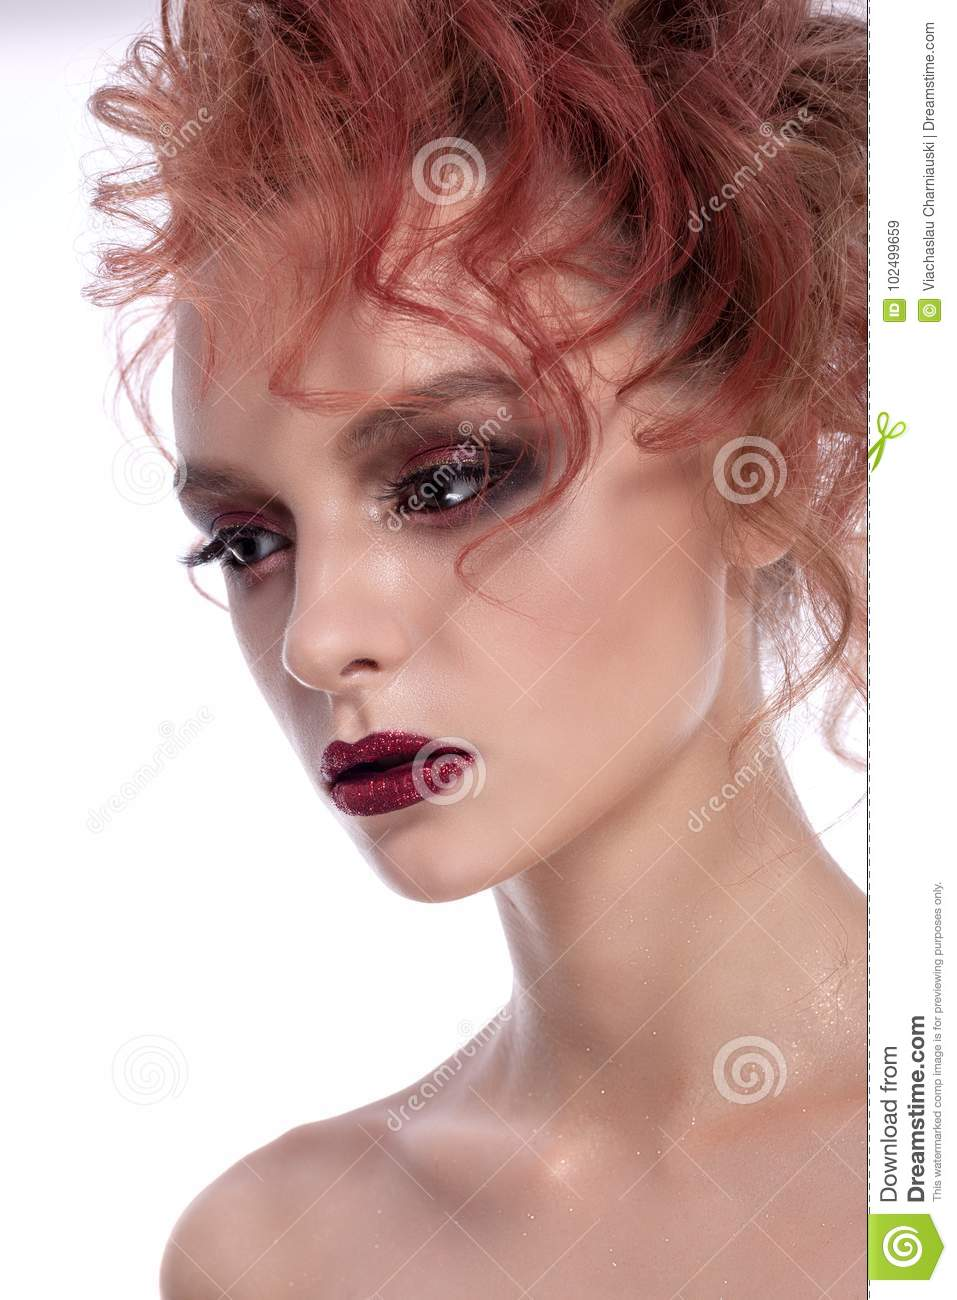 Portrait of a beautiful girl with a creative hairstyle and makeup.